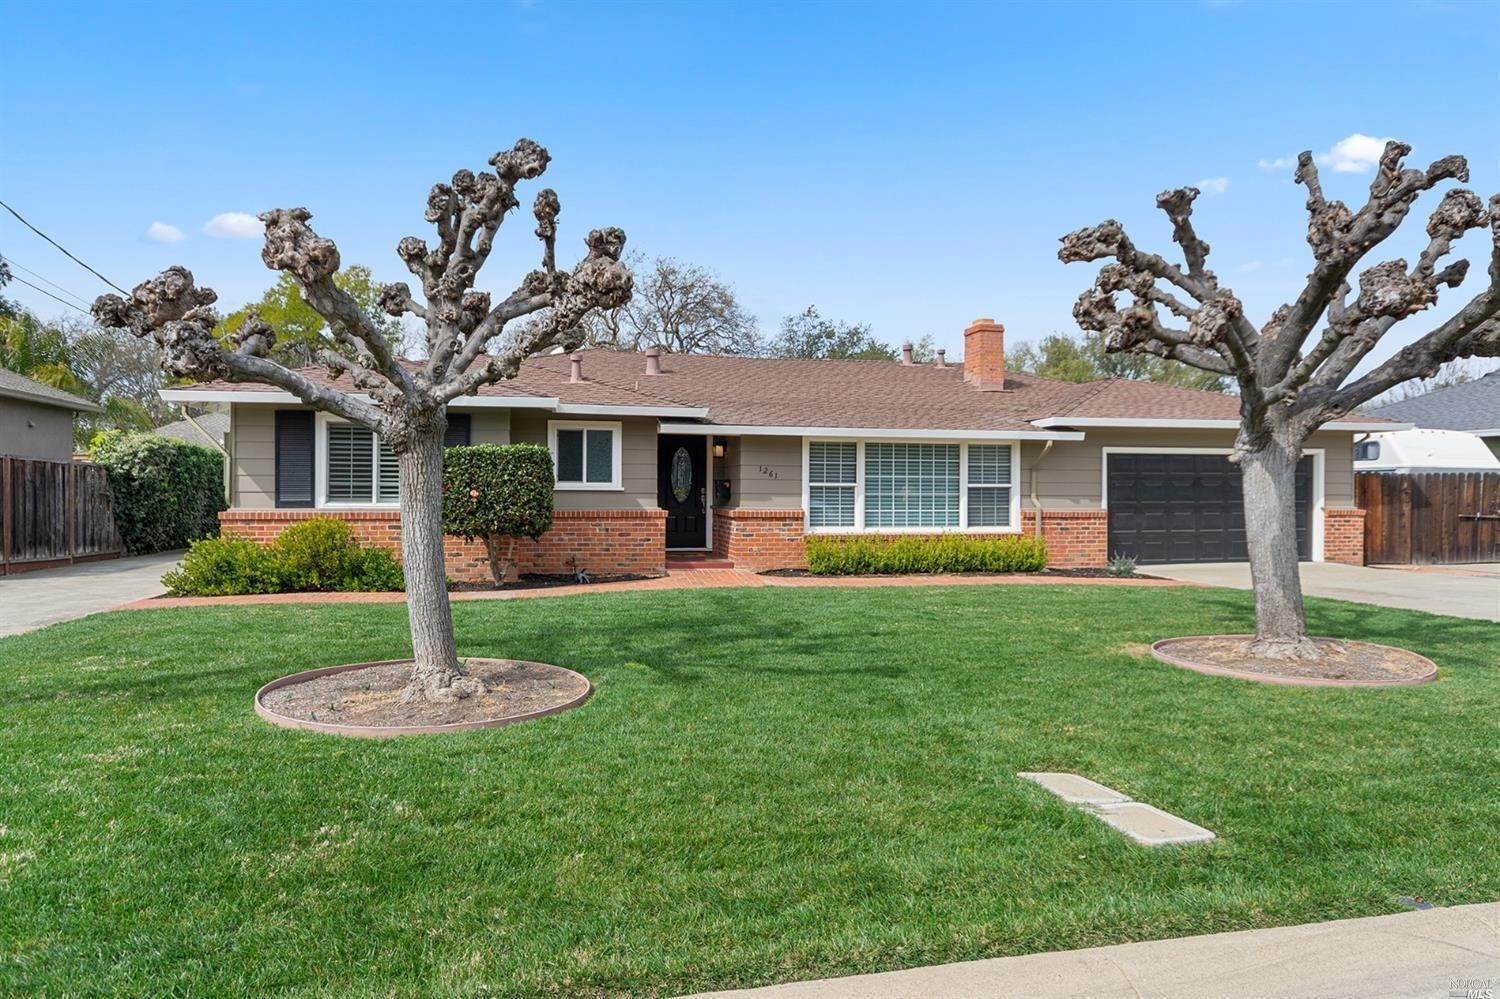 Property for Sale at 1261 Davis Avenue, Concord Concord, California 94518 United States